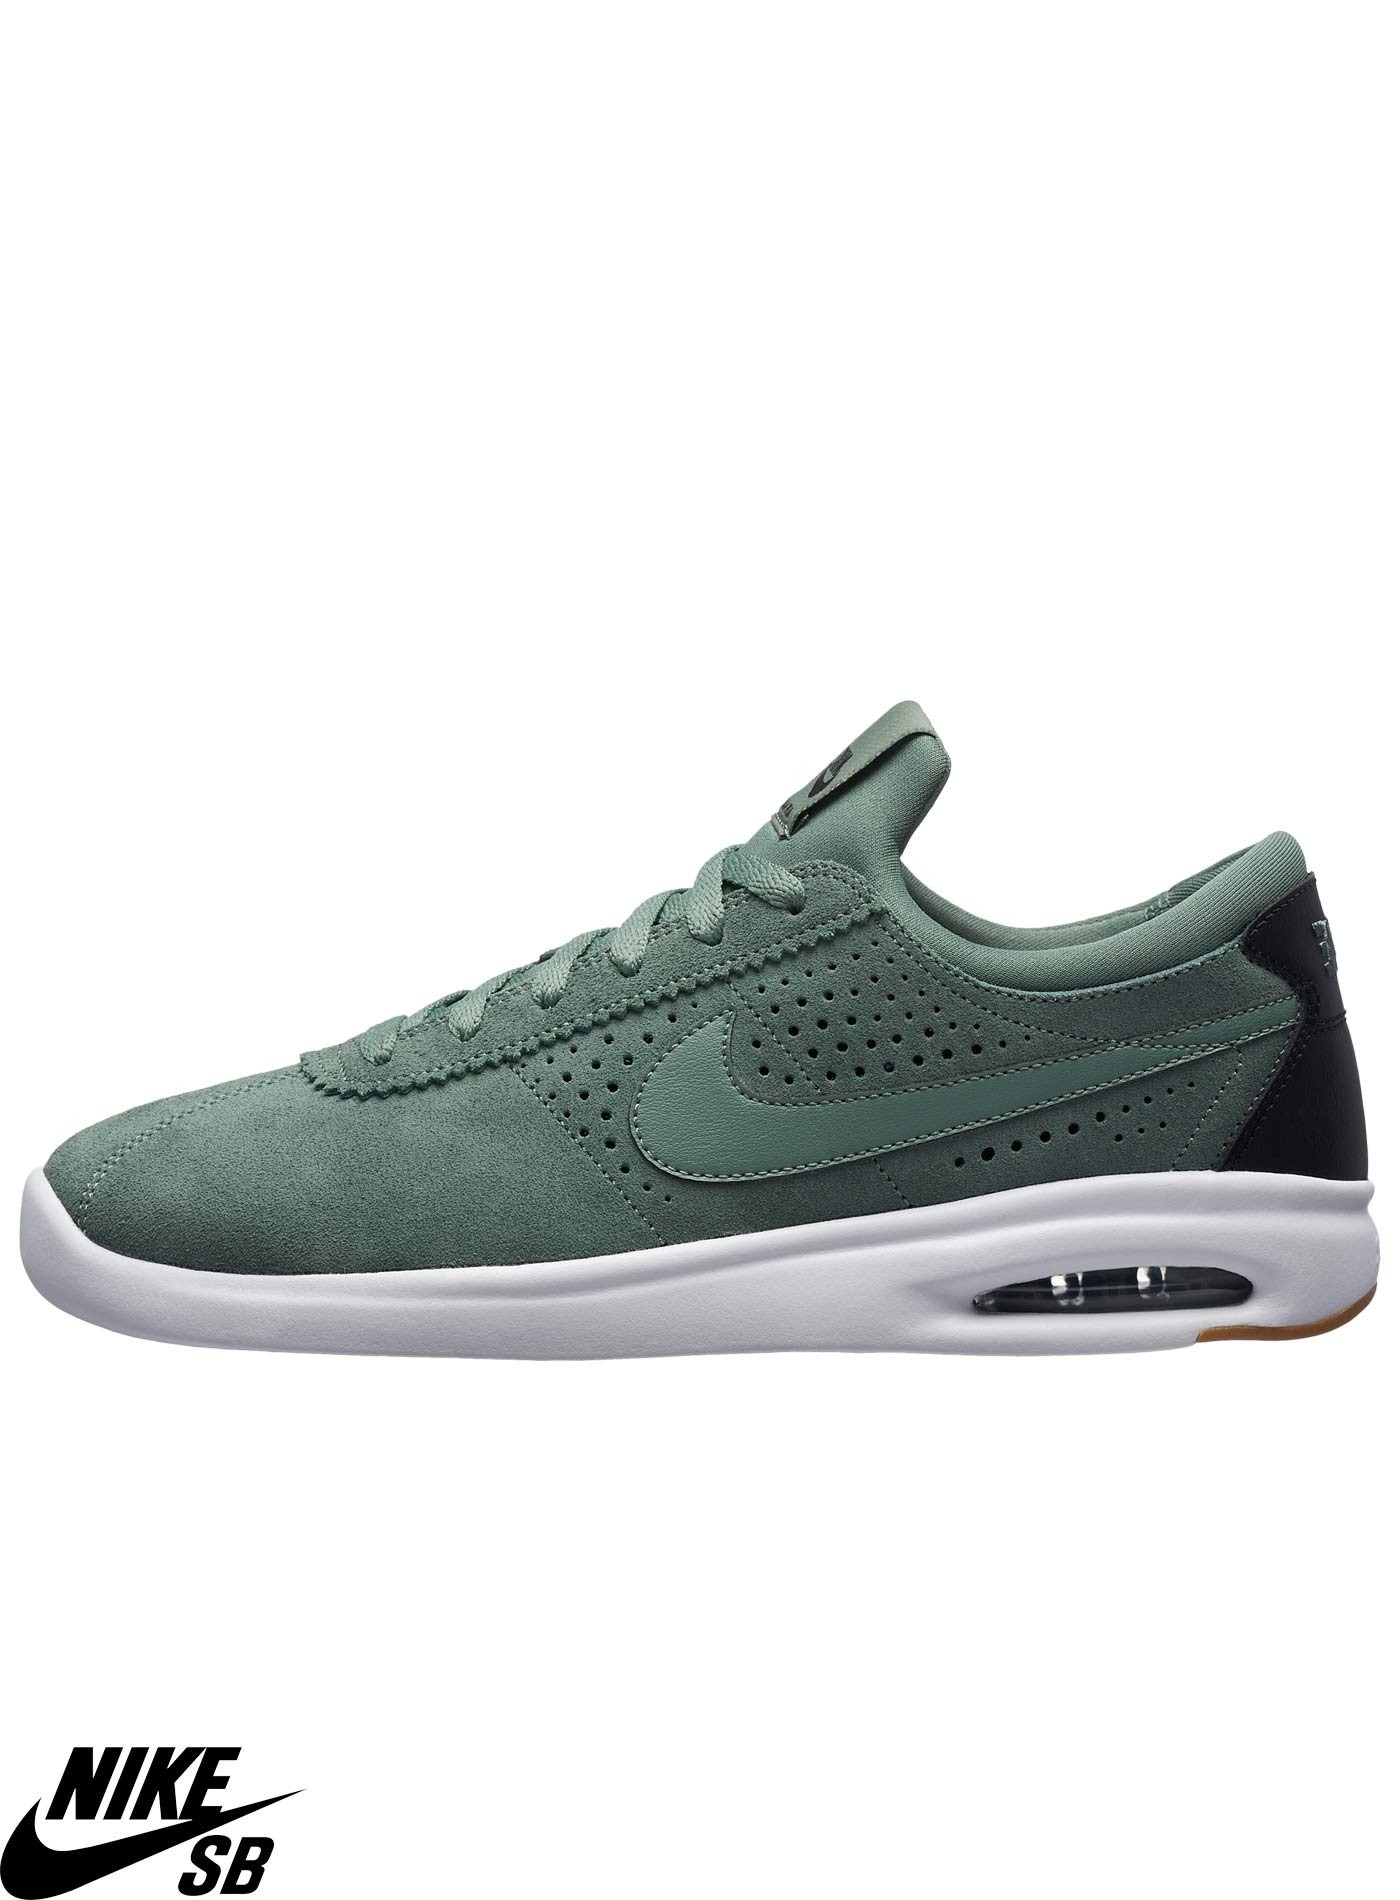 low priced 6febb 5091d Nike SB Air Max Bruin Vapor Clay Green Skate Shoes